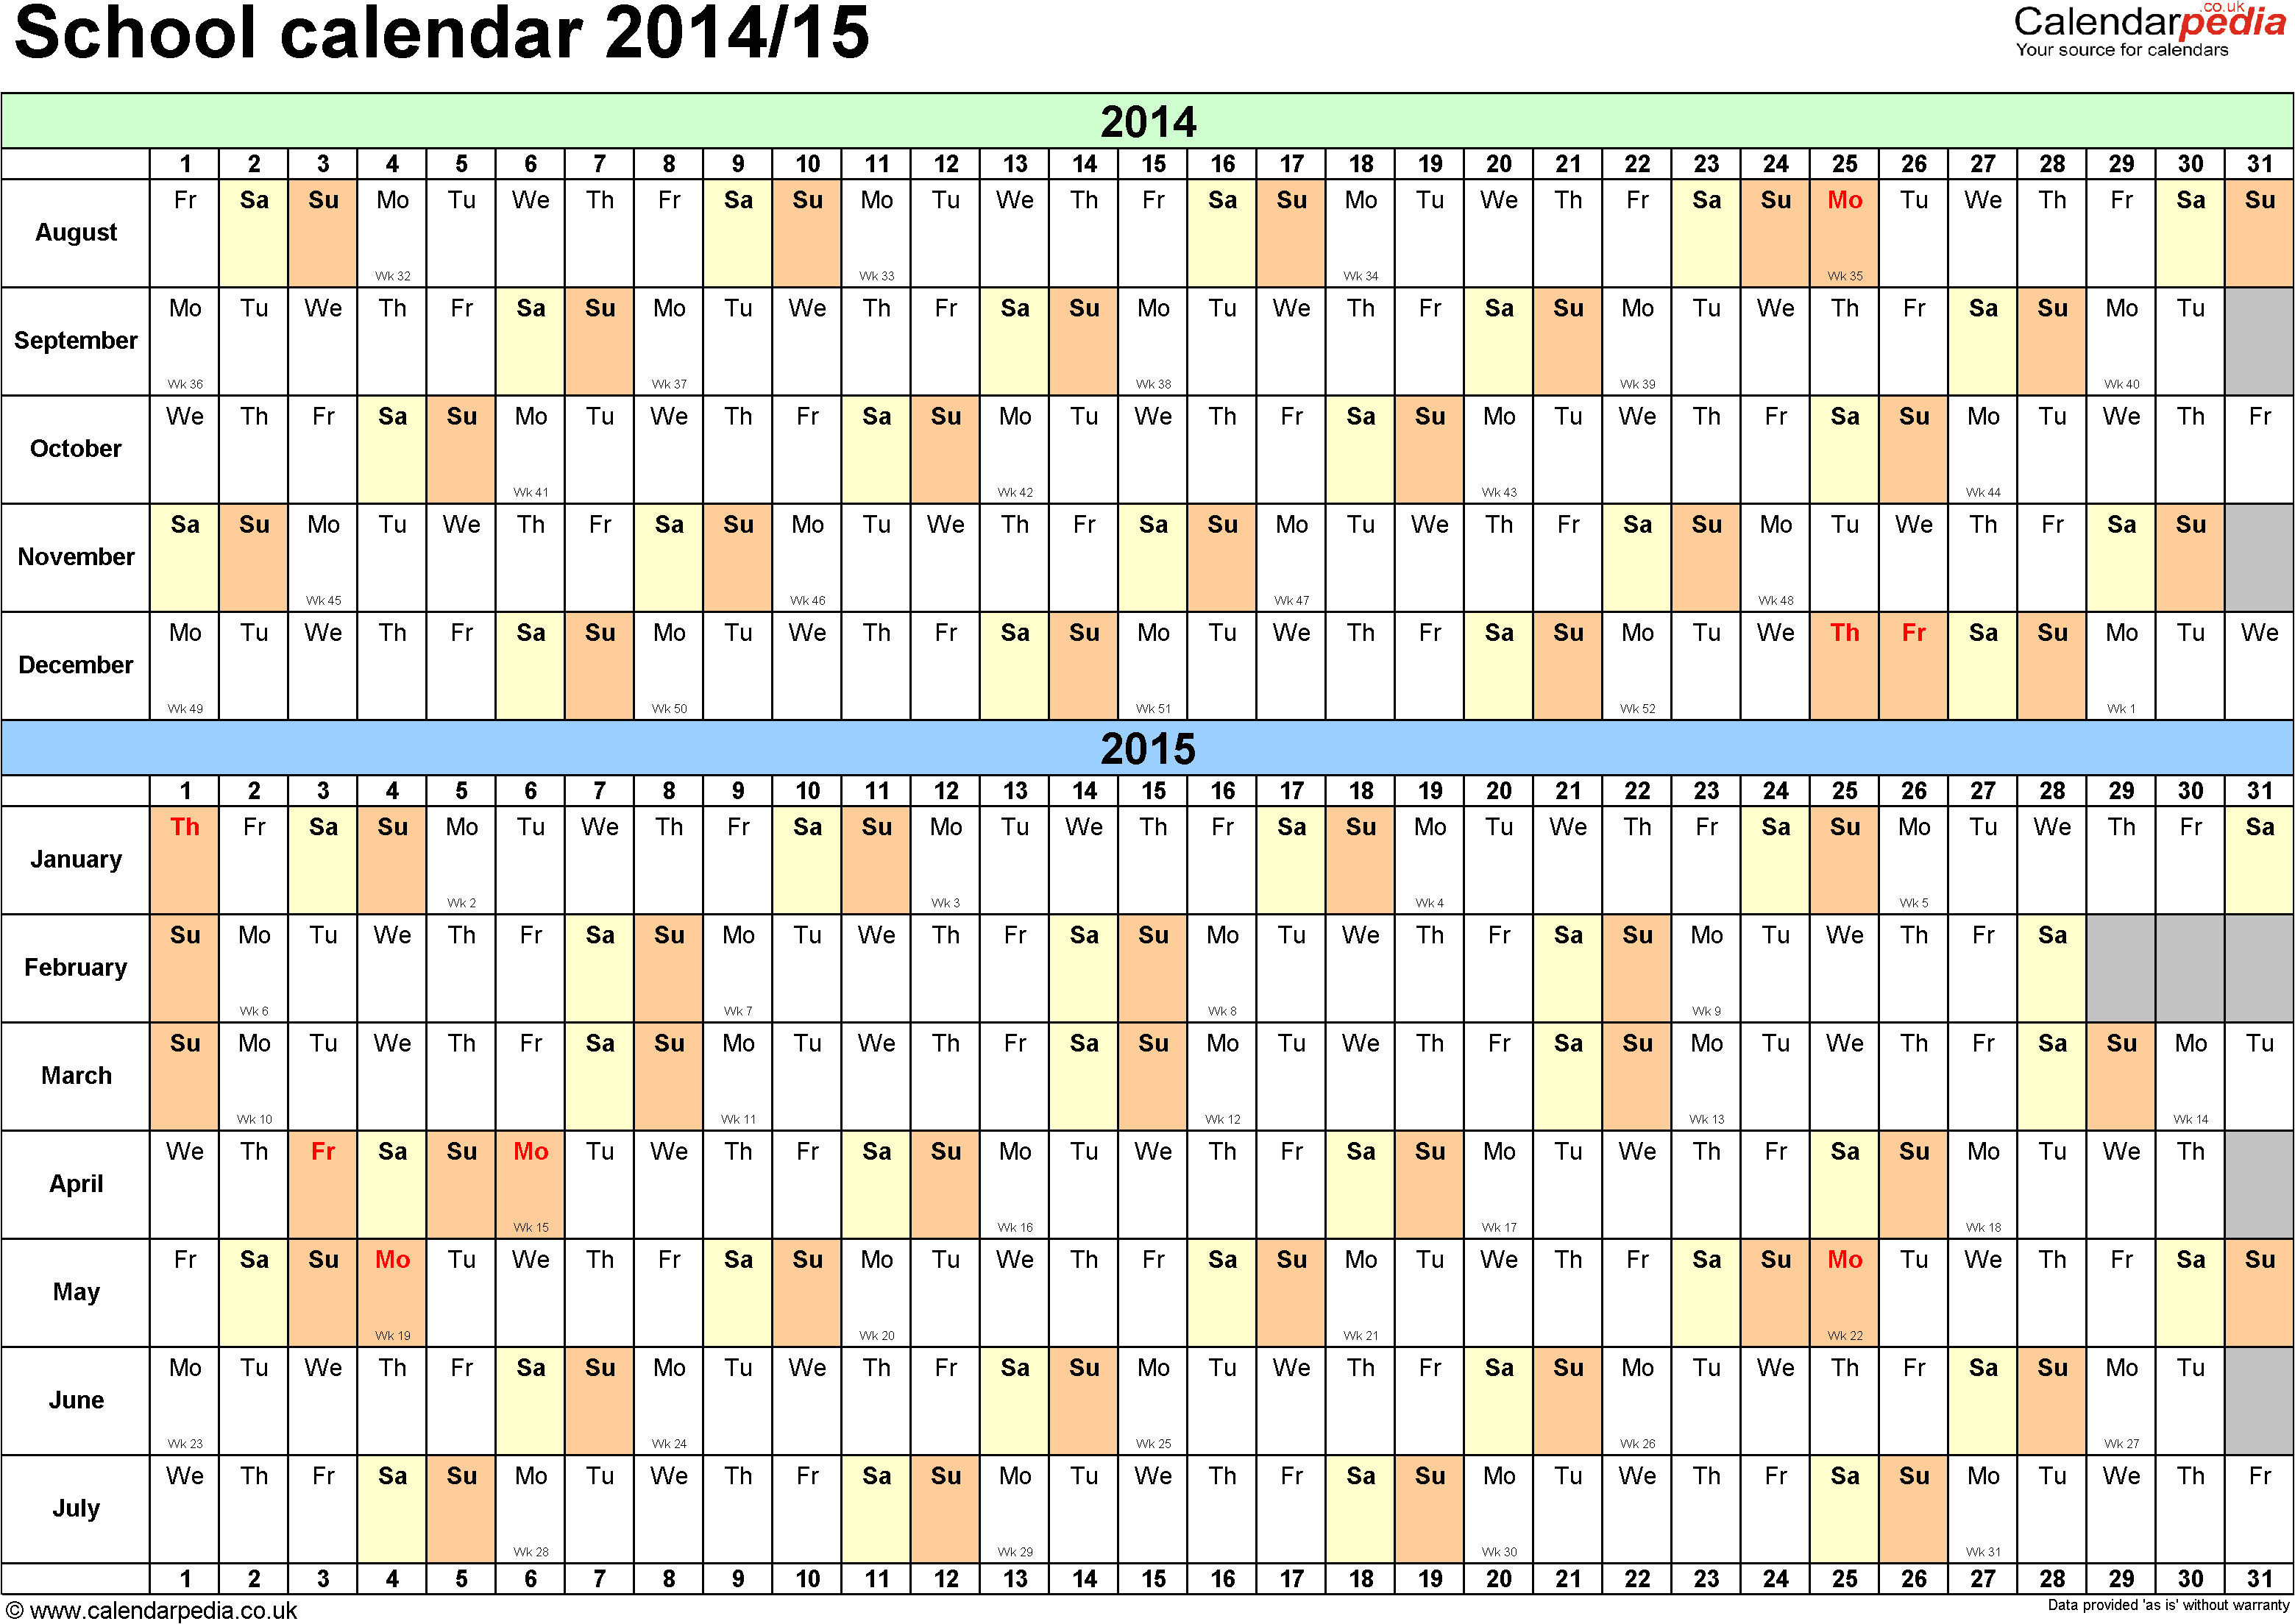 Academic Calendar Template 2014-15 School Calendars 2014 2015 as Free Printable Pdf Templates